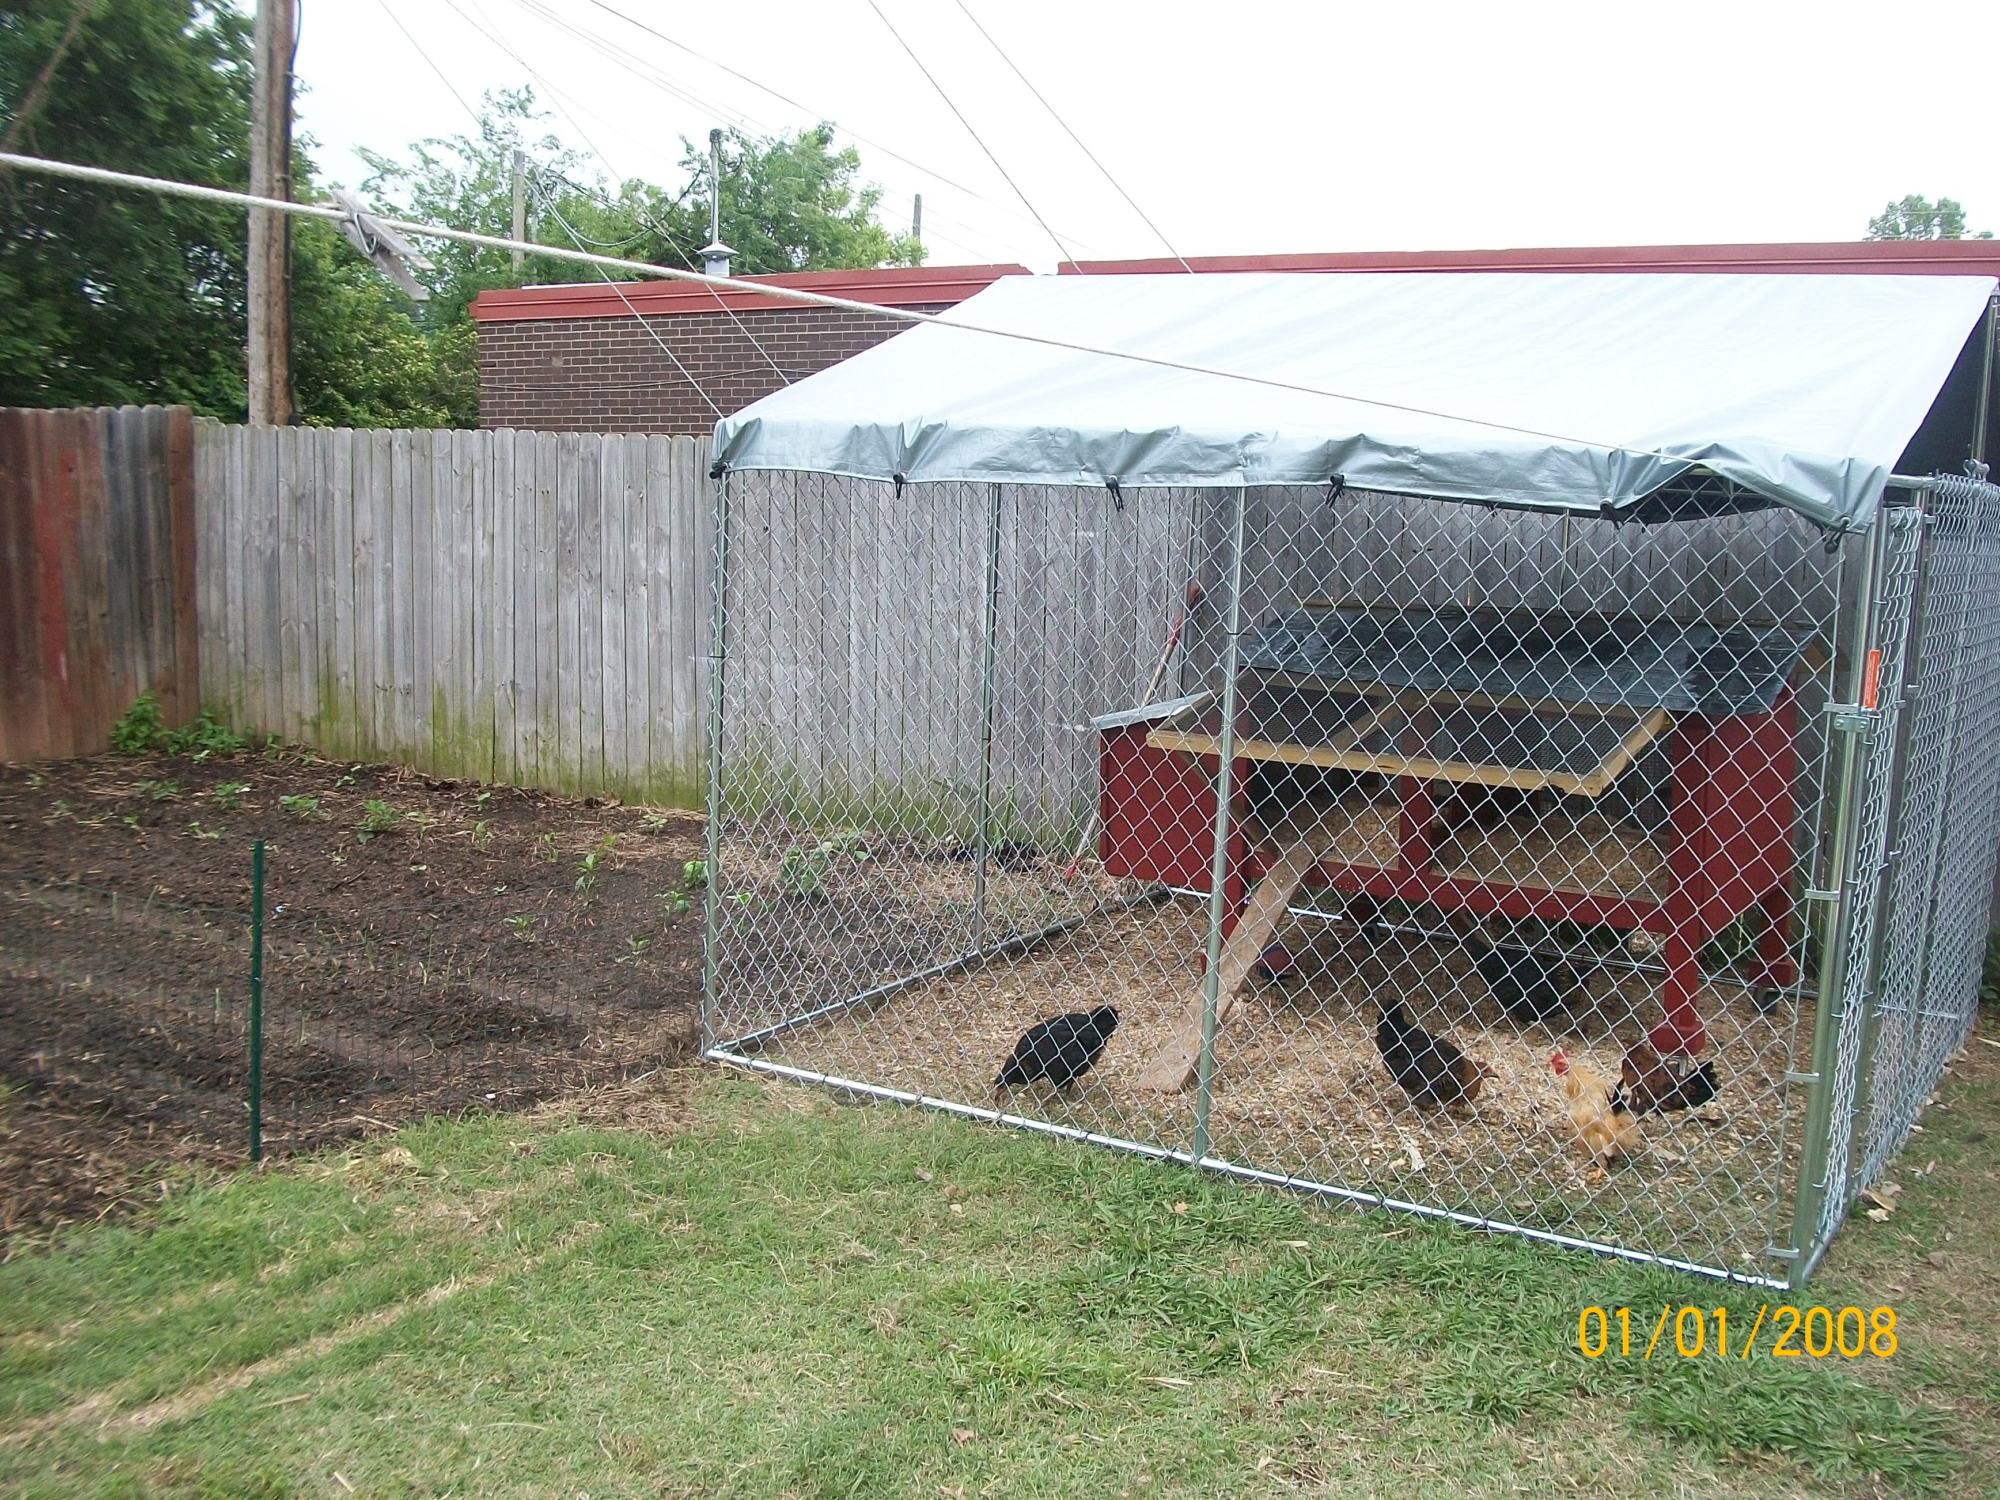 How to close in the peak area on a dog kennel coop for Dog kennel in garage ideas